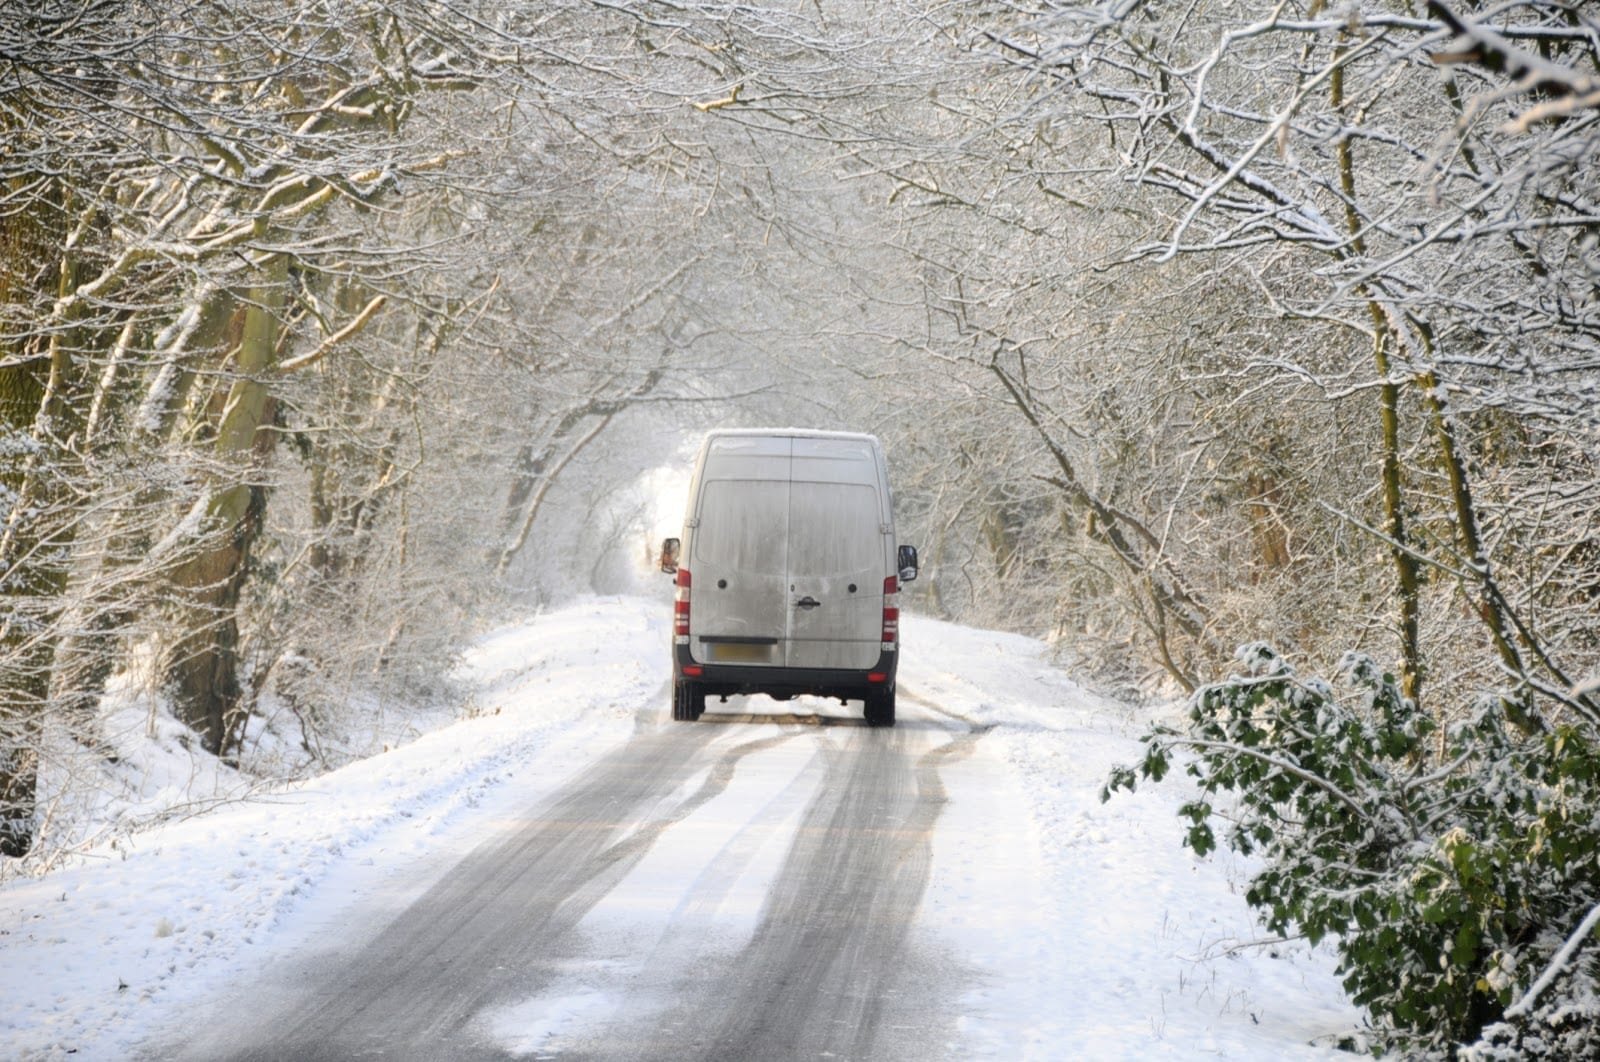 A van driving in hazardous conditions